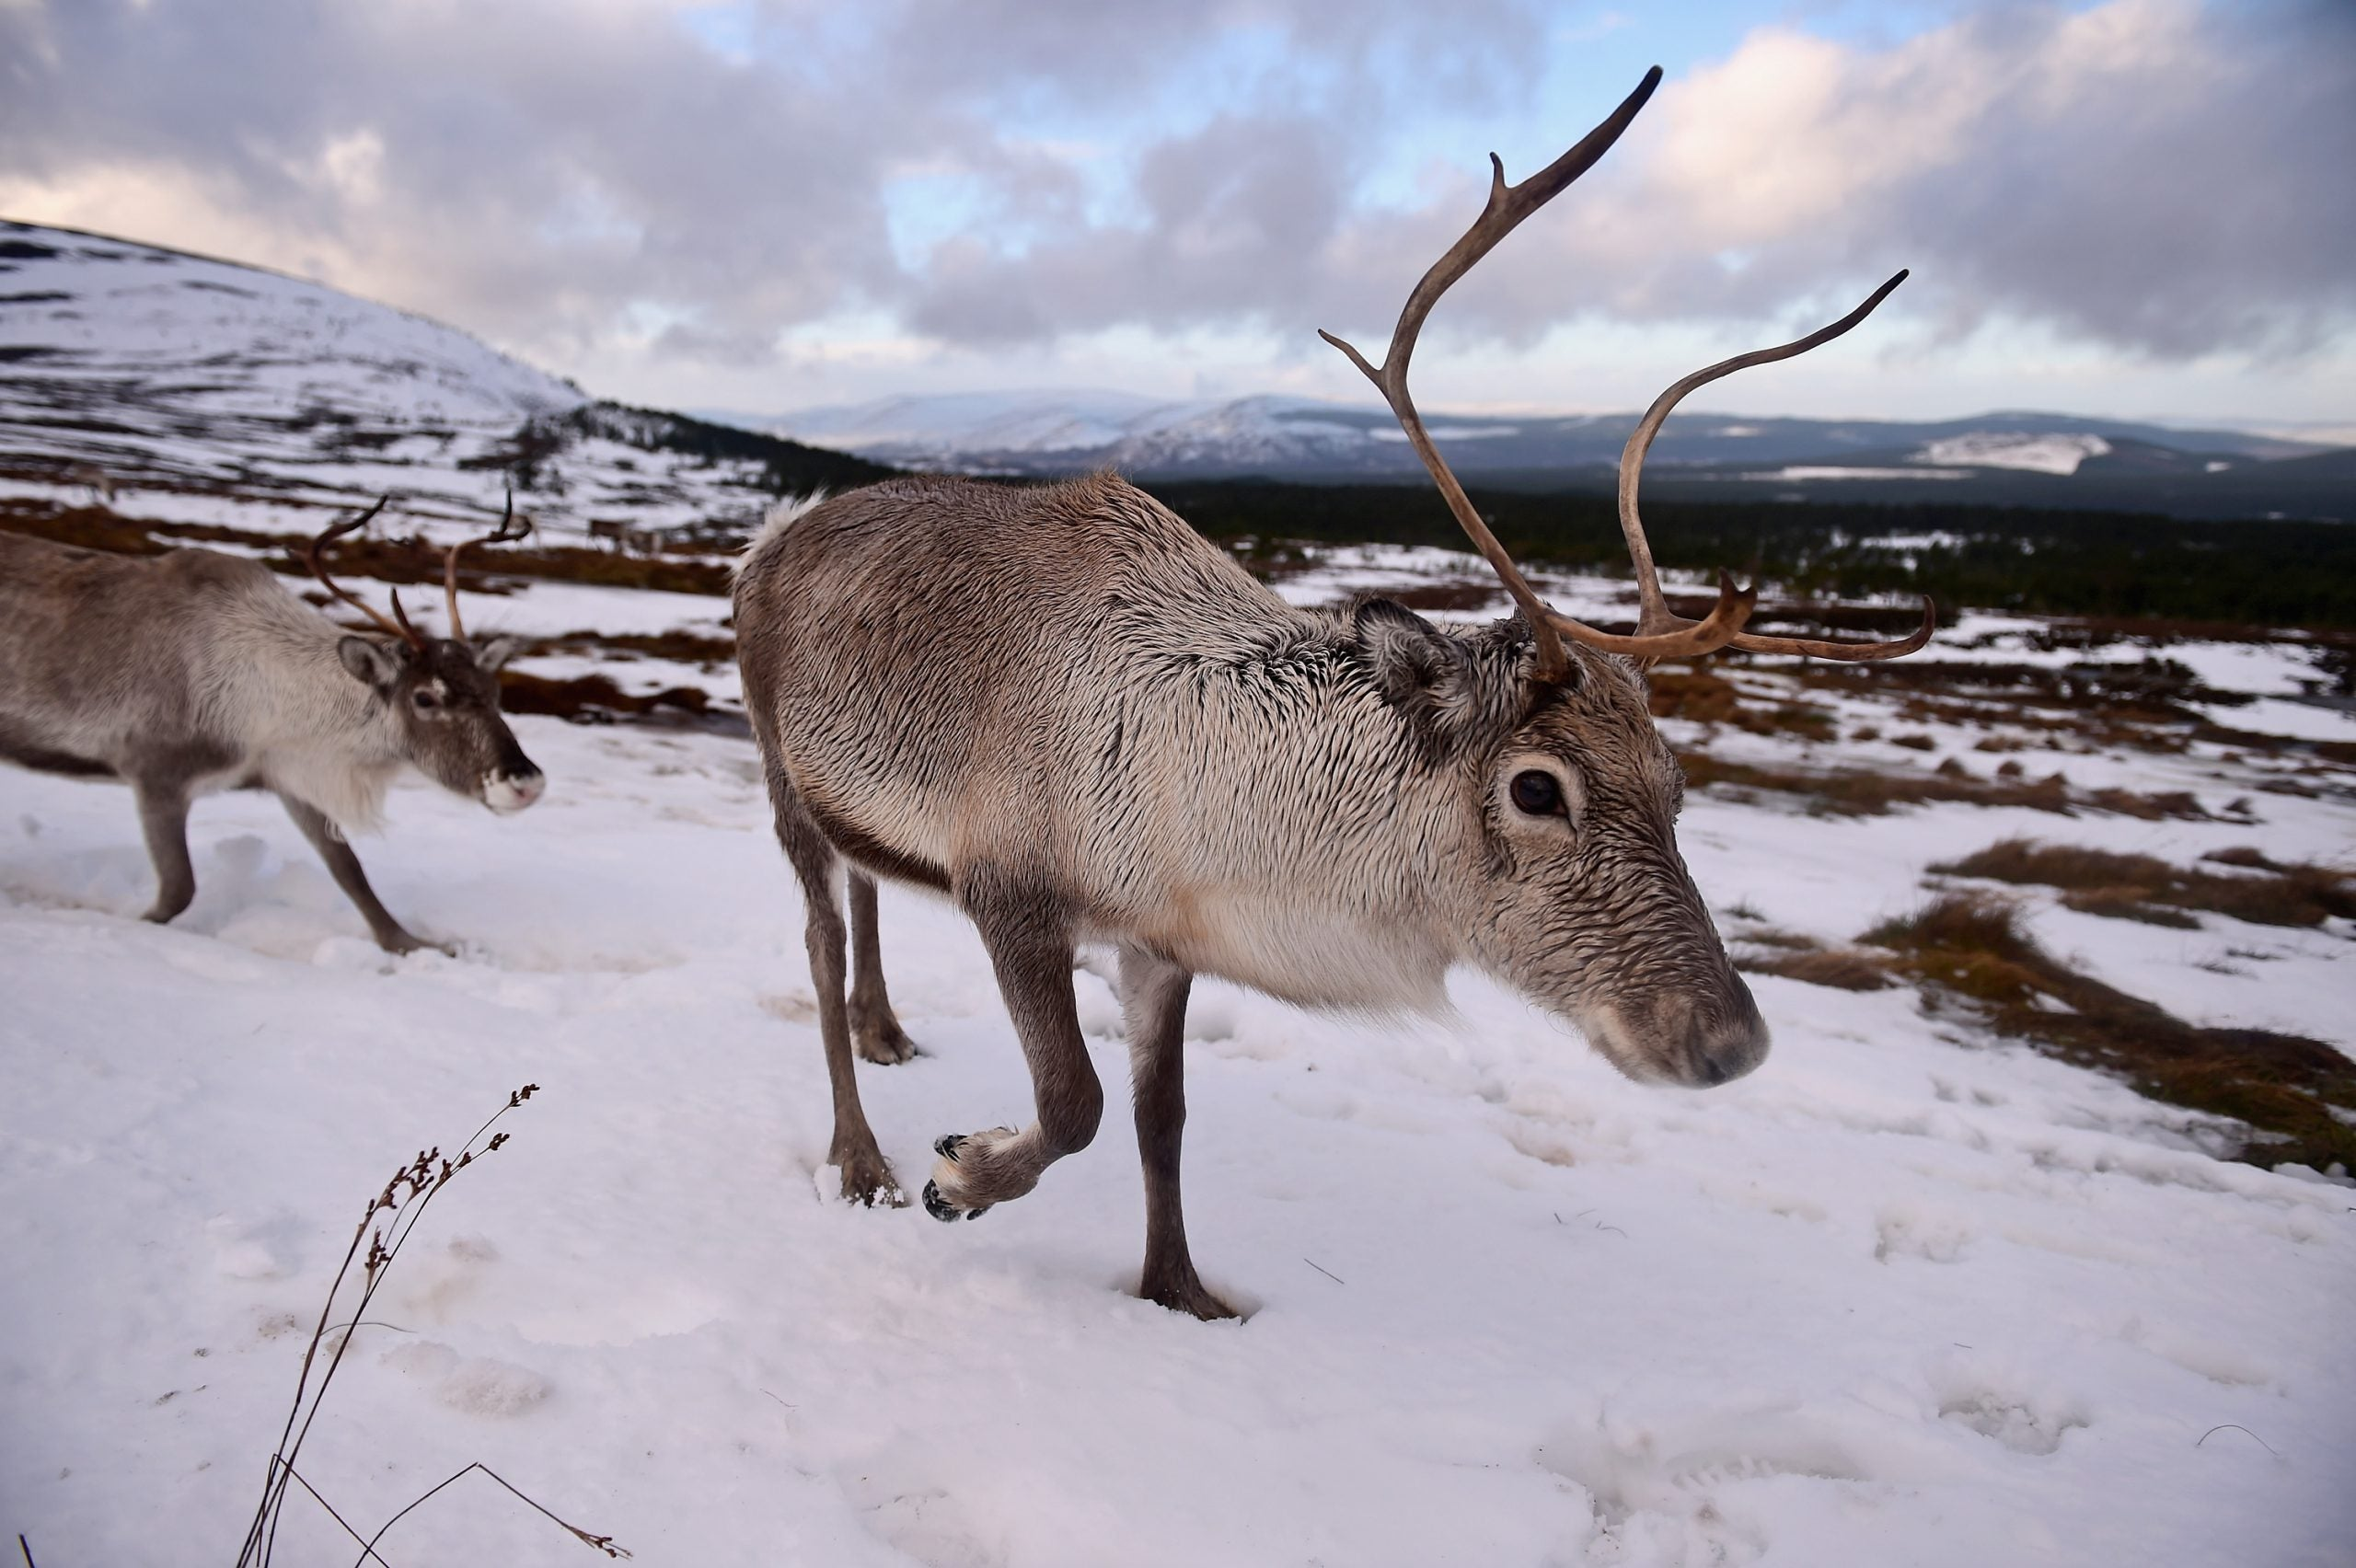 Subscriber of the week: Rudolph